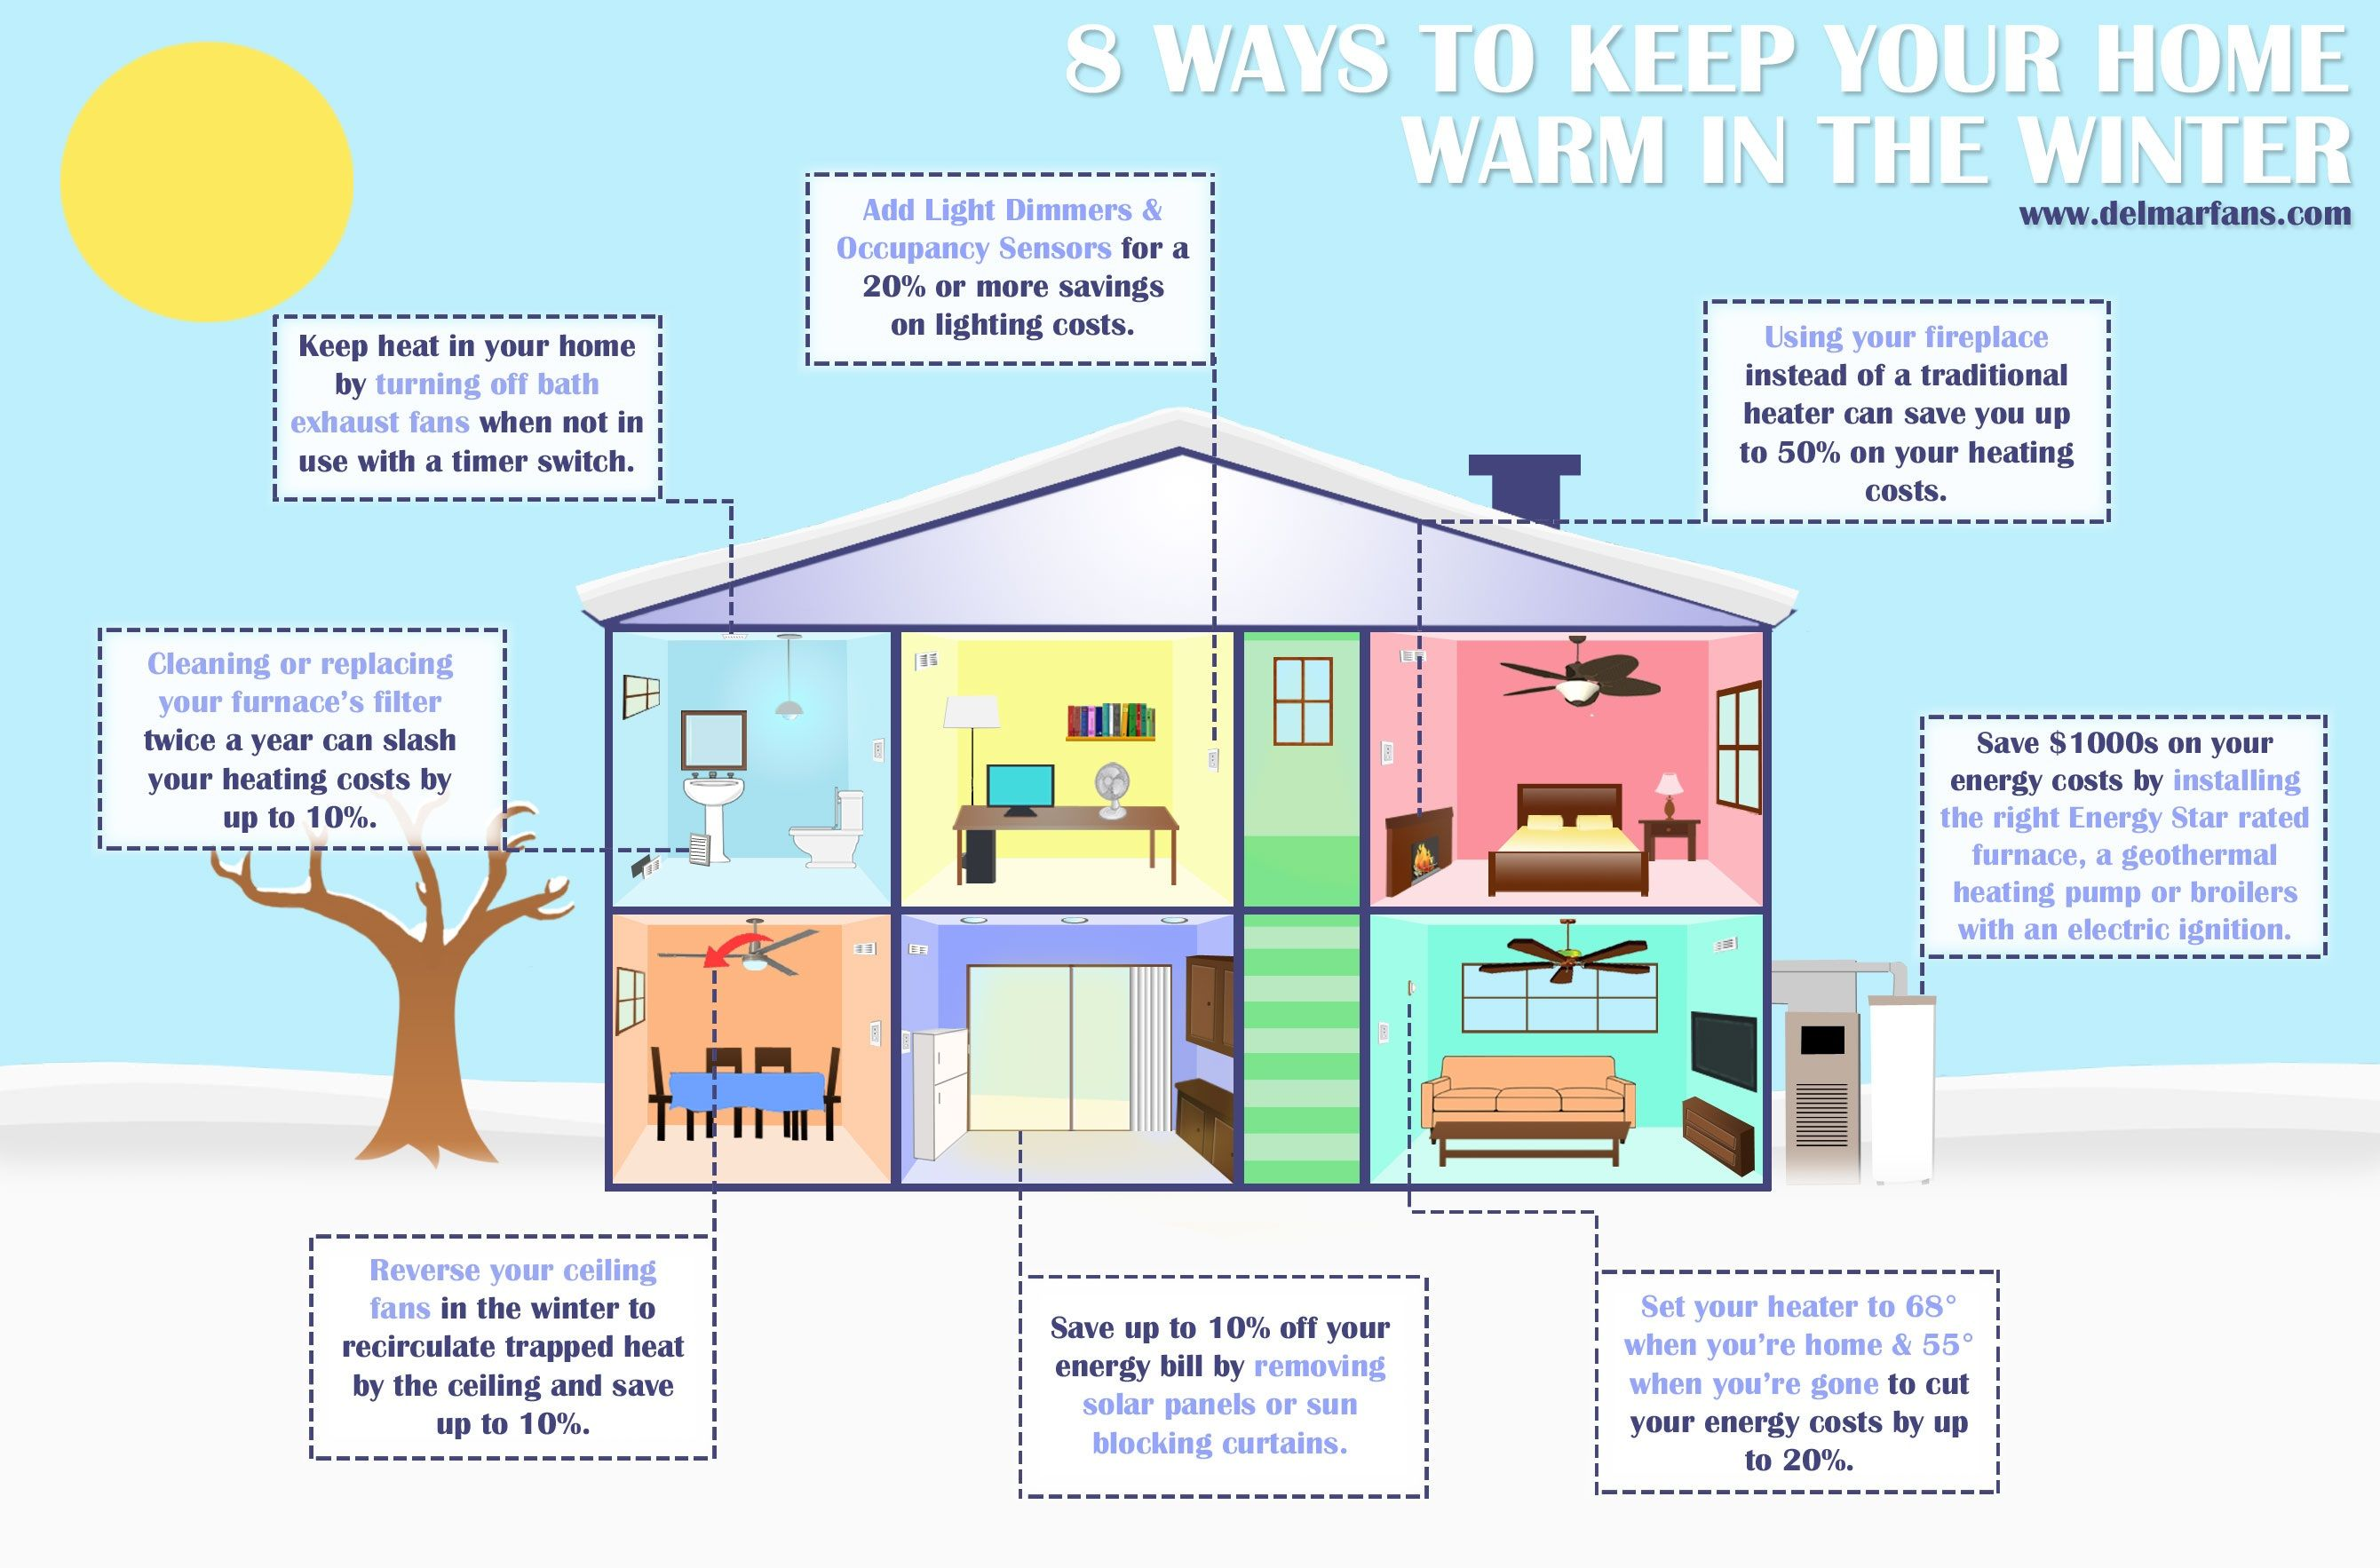 8 Ways To Keep Your Home Warm In The Winter